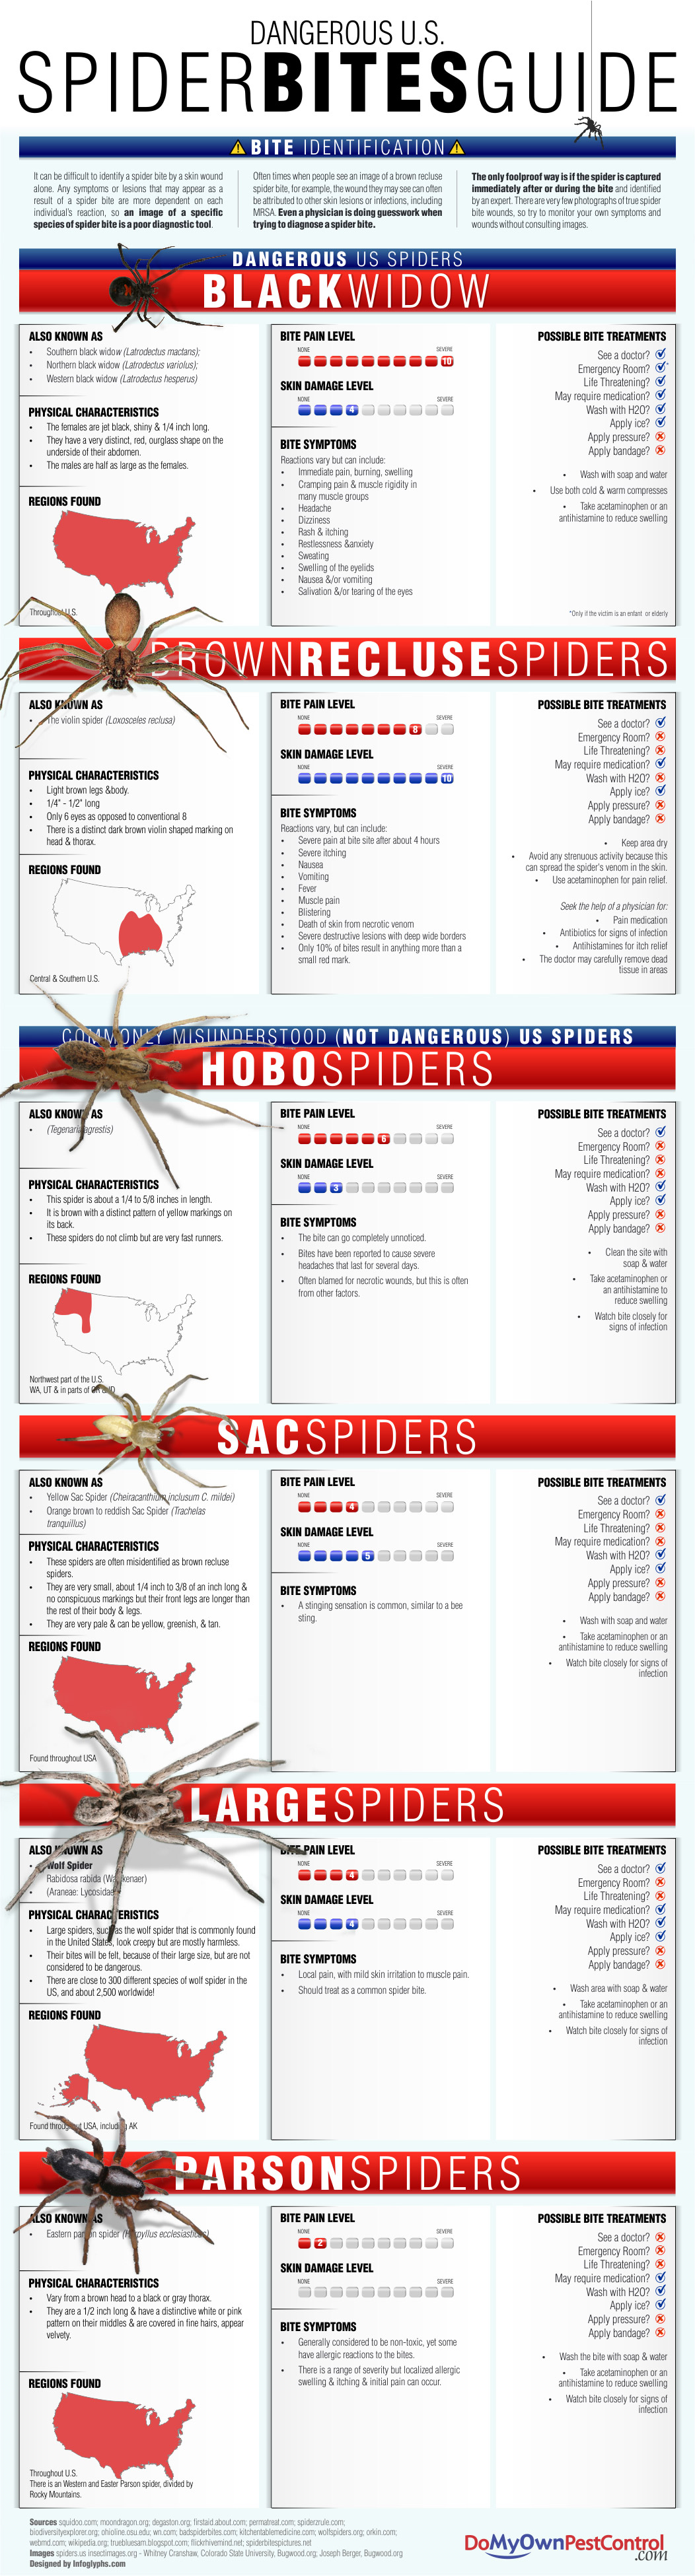 dangerous us spider bites guide